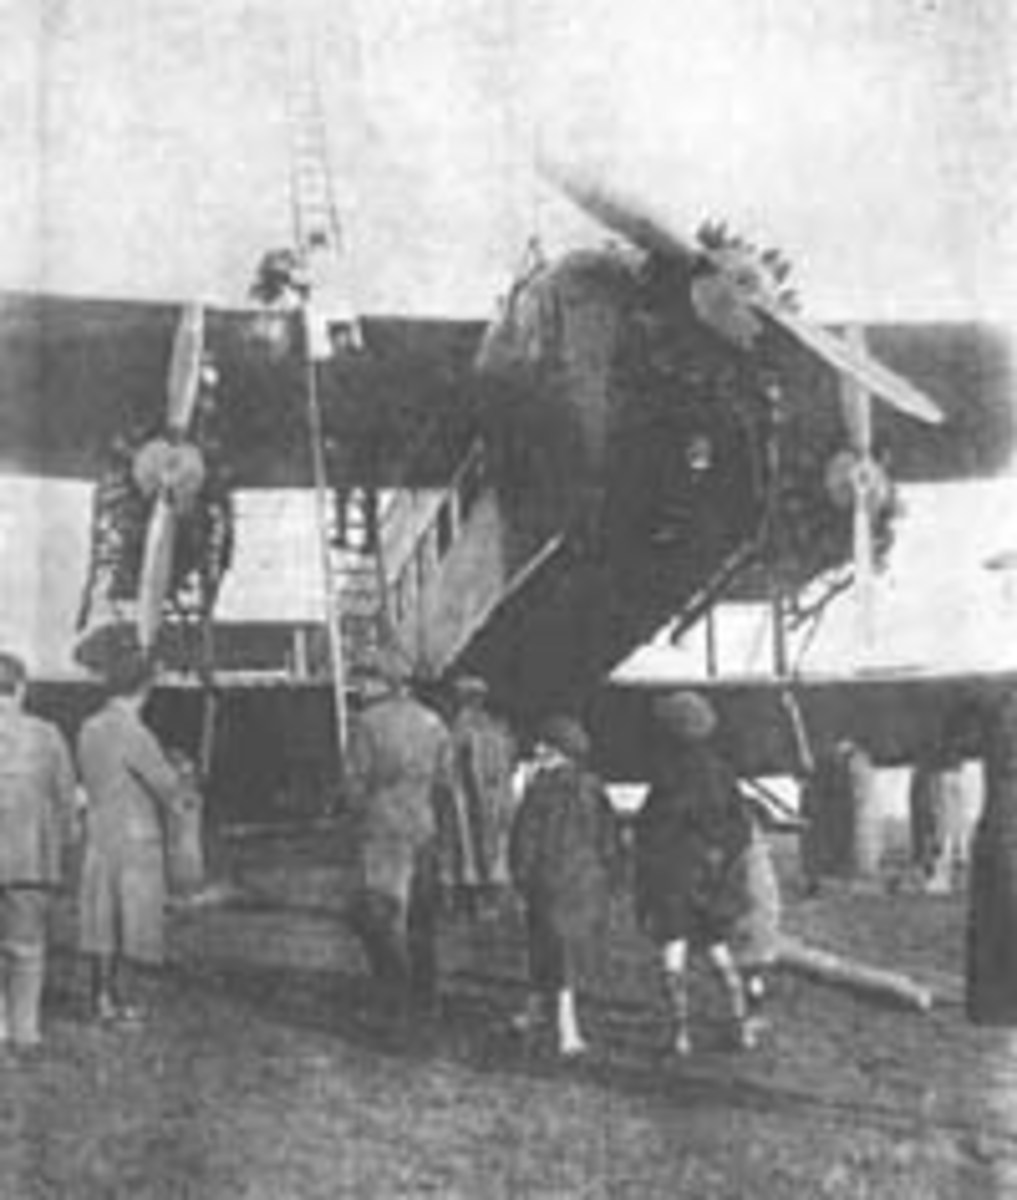 Armstrong-Whitworth Argosy airliner at Pluckley in 1926 after a forced landing.